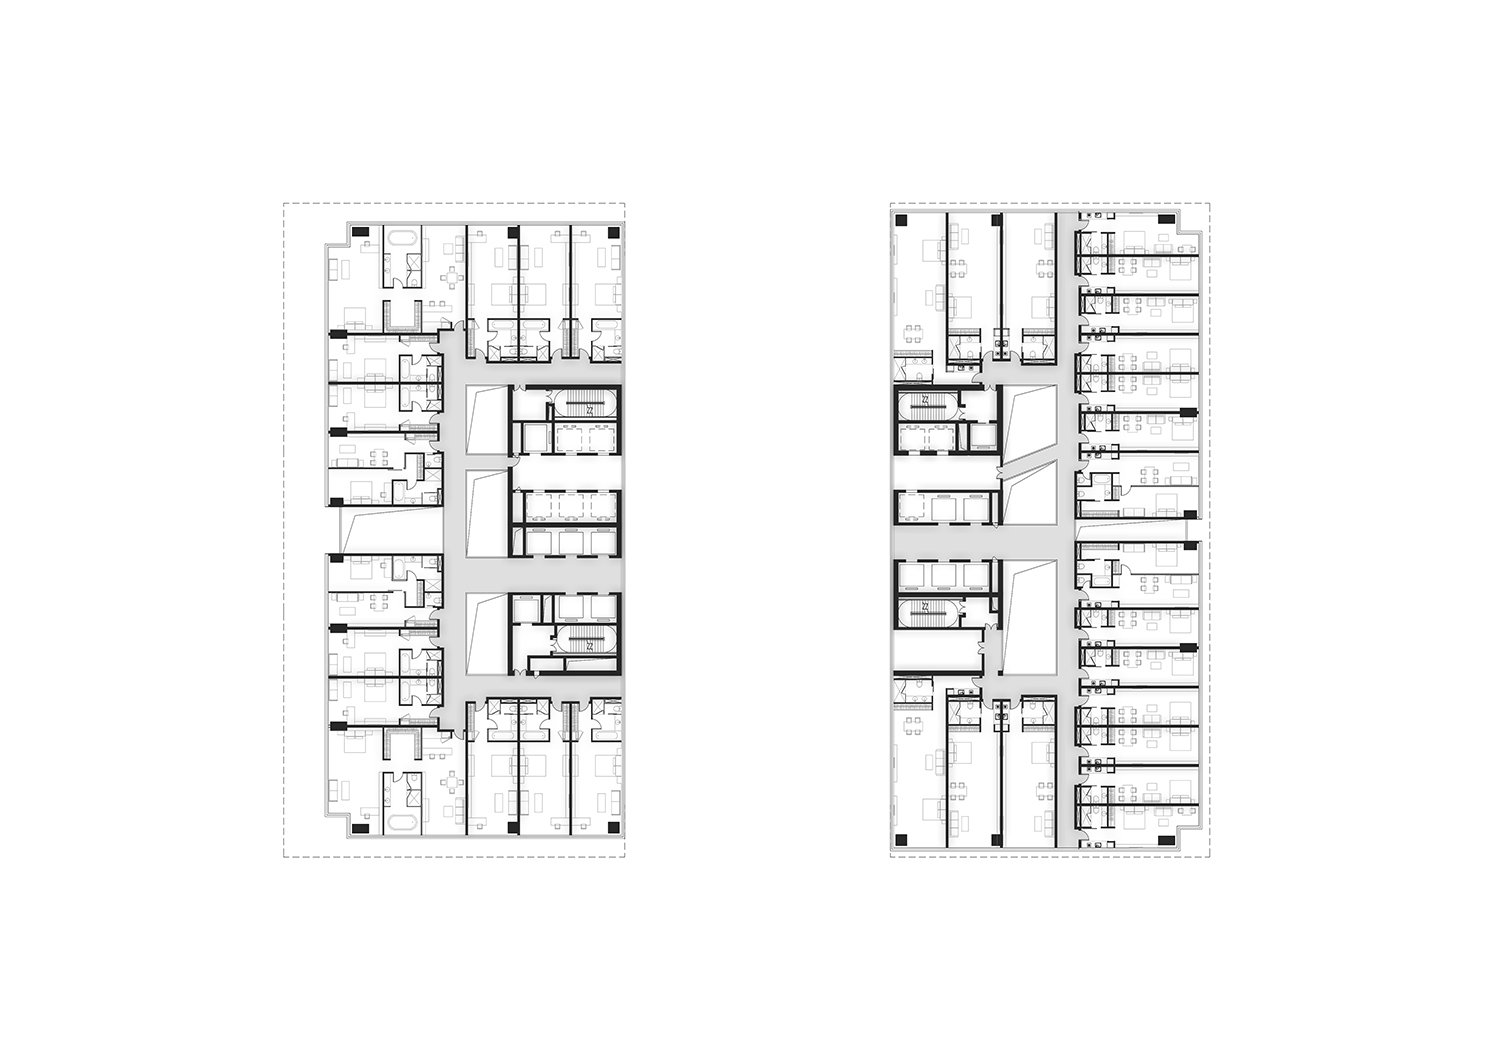 Hotel Floor Plan All renderings and drawings © Rocco Design Architects}